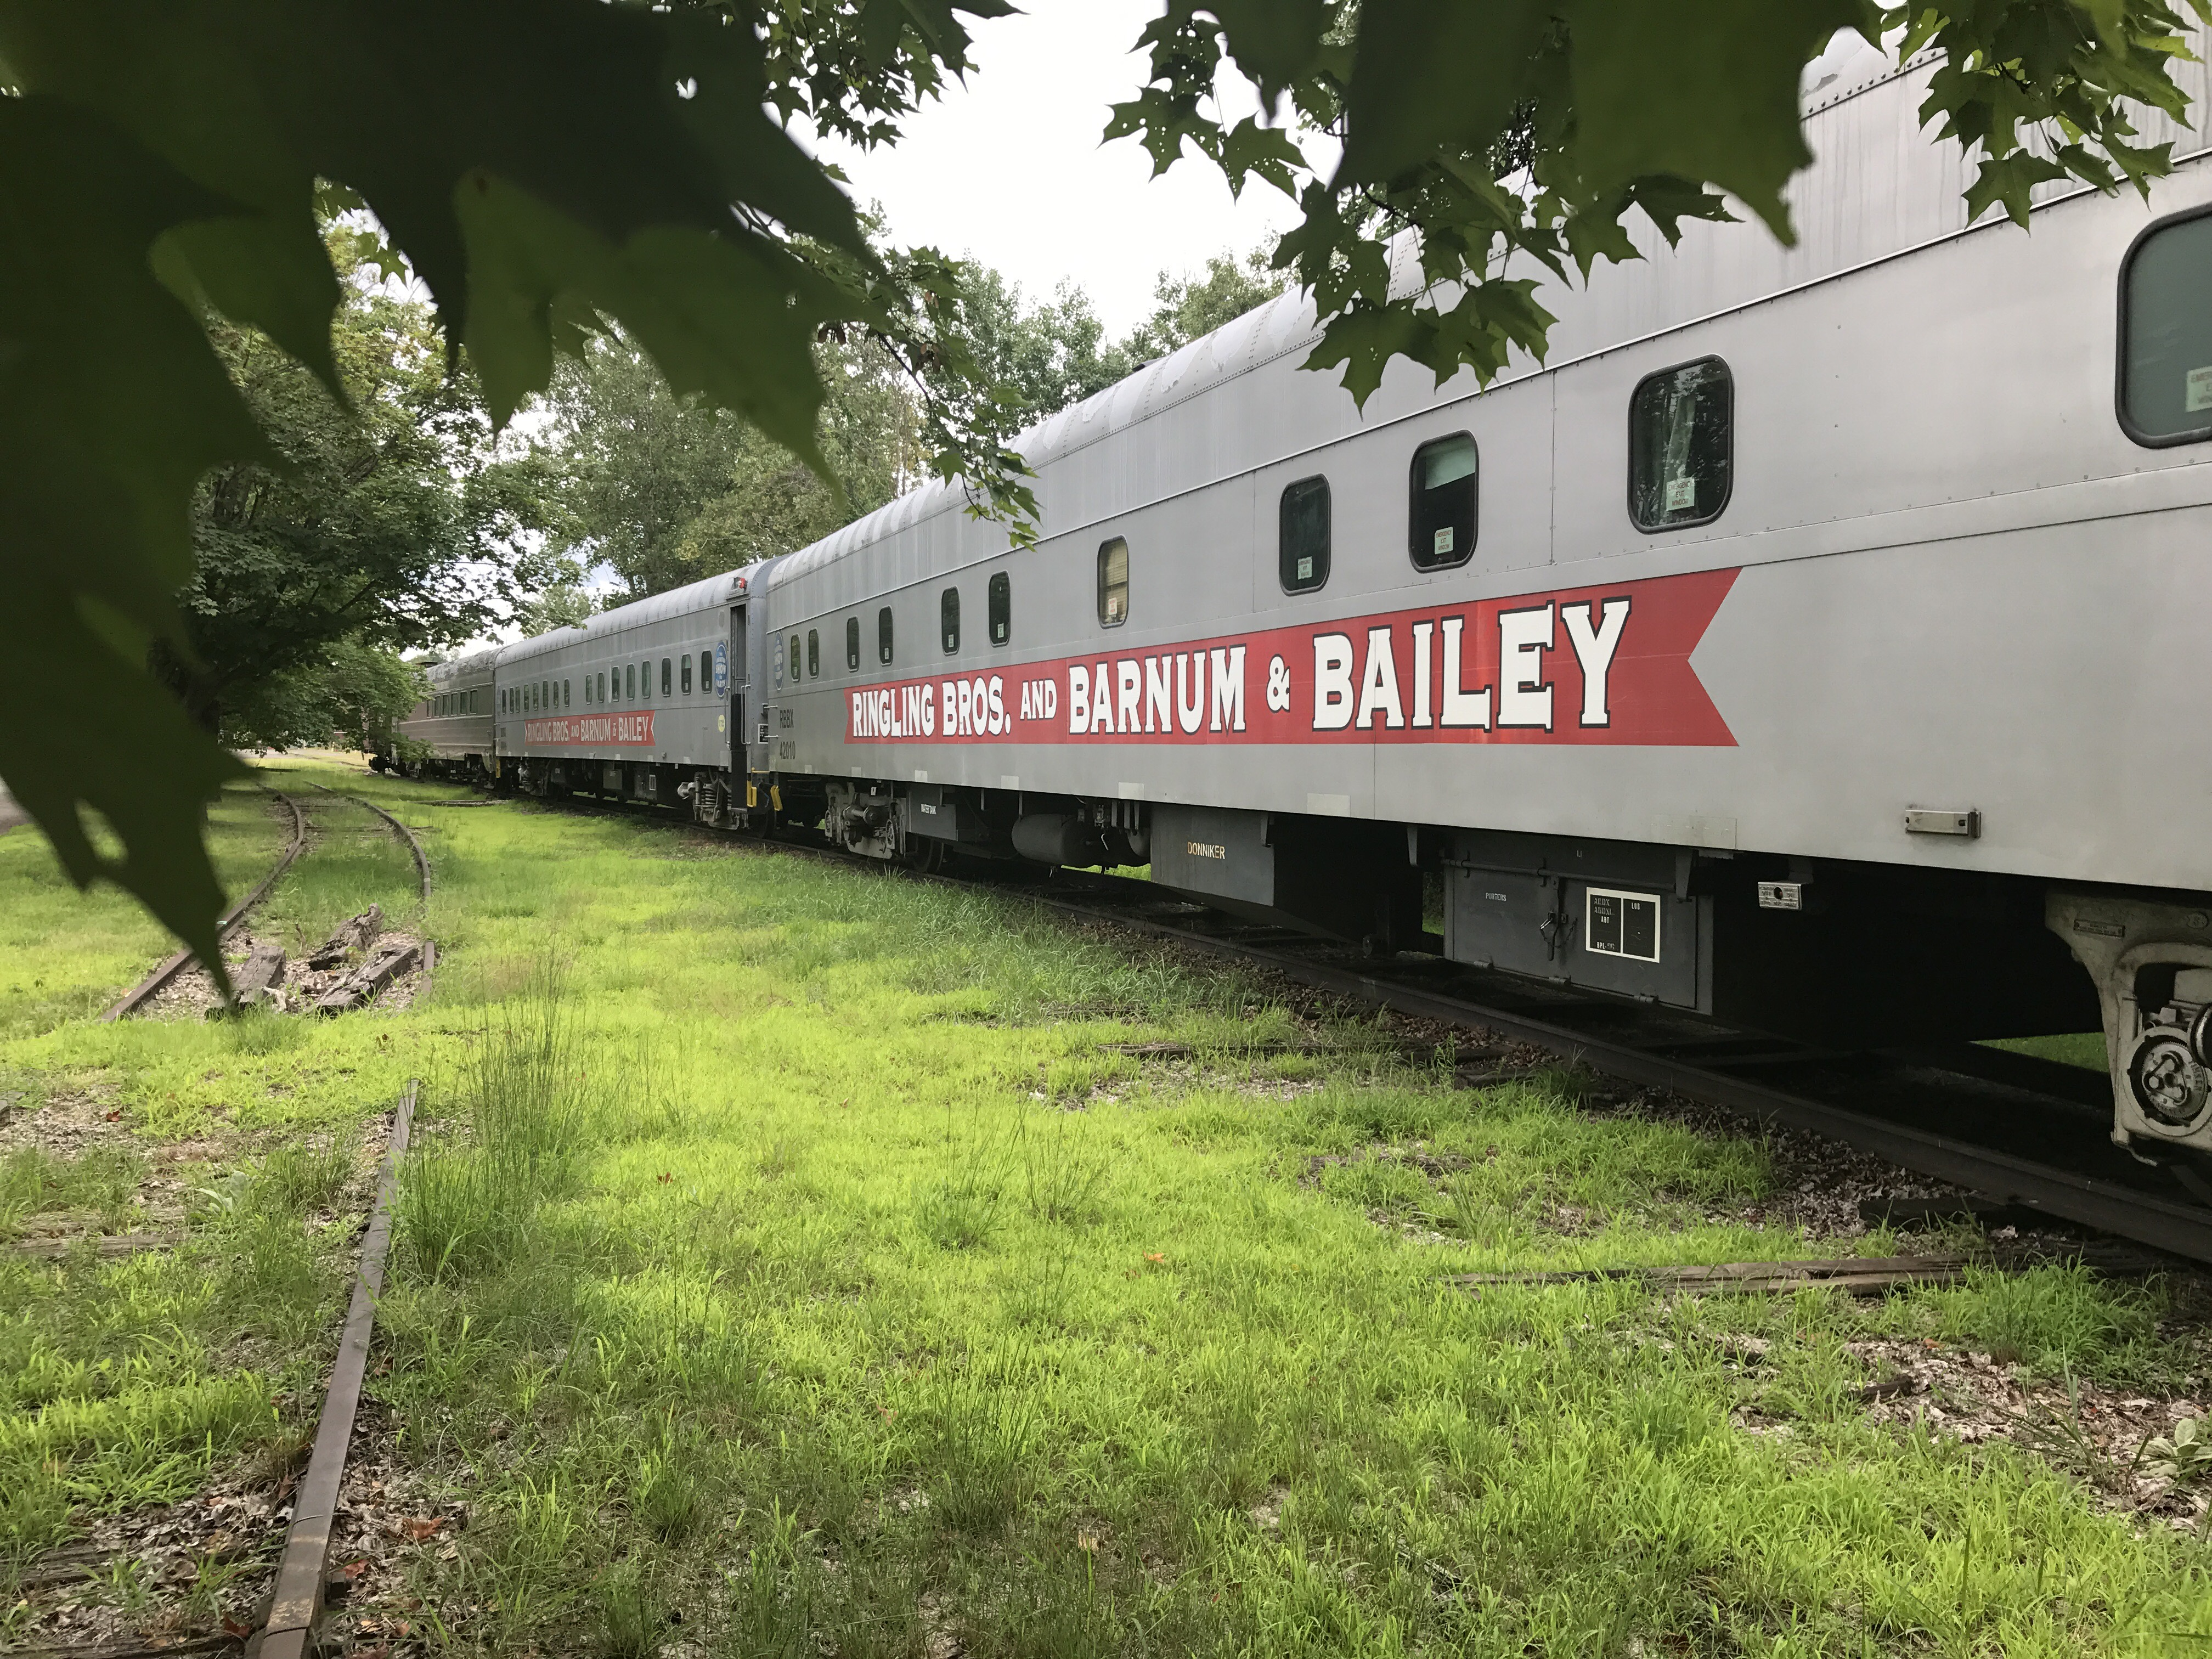 Former Ringling Bros and Barnum & Bailey circus cars